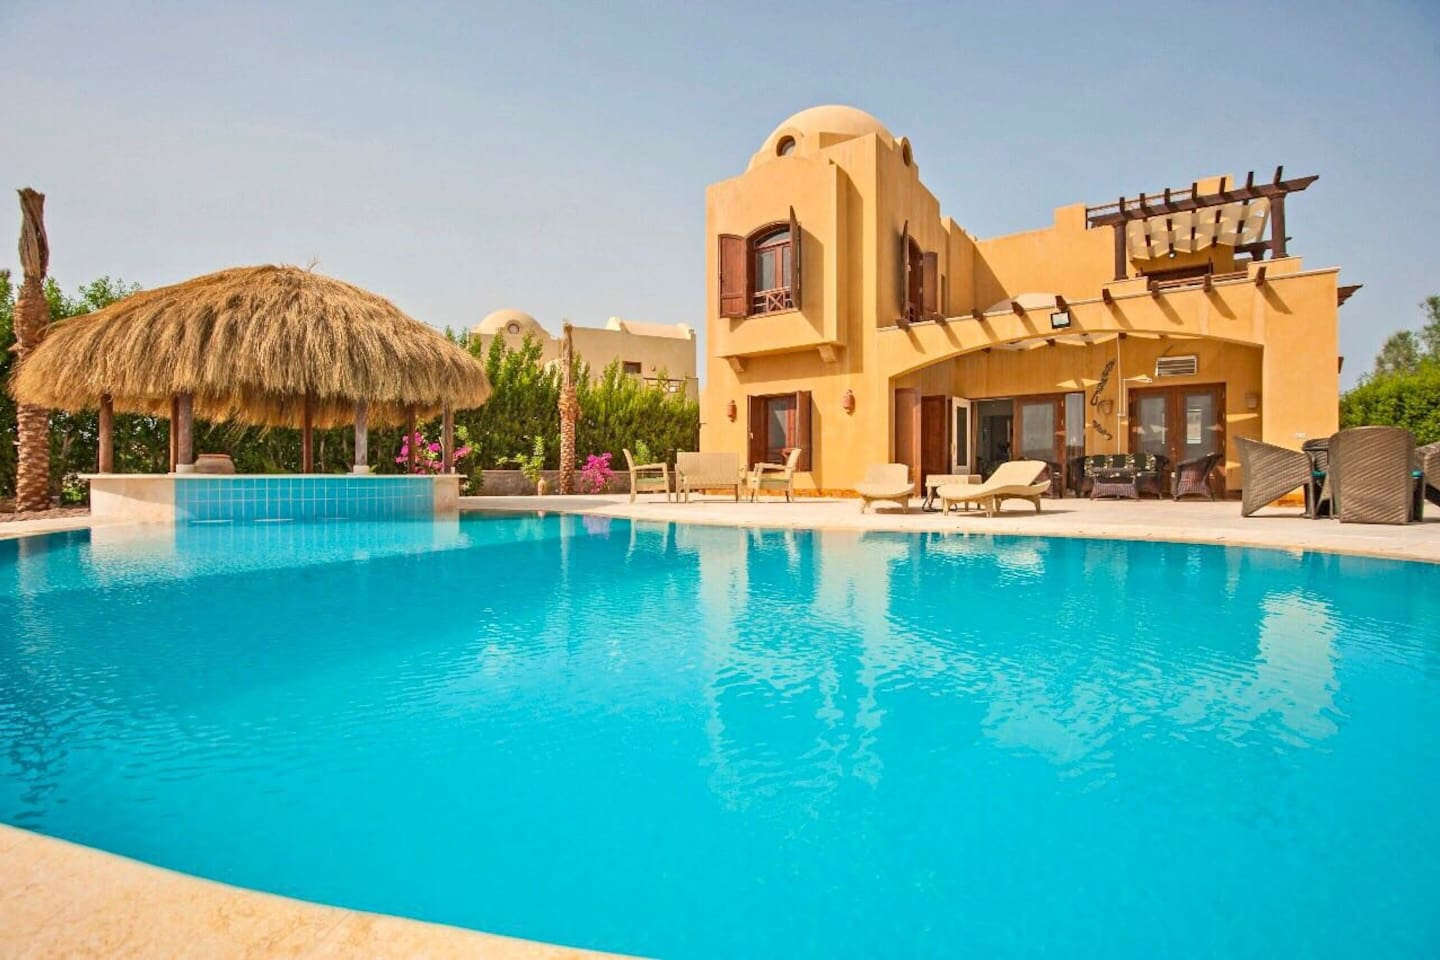 3 Bedrooms Villa for Rent in El Gouna with Private Heated  Pool and Maid's Room